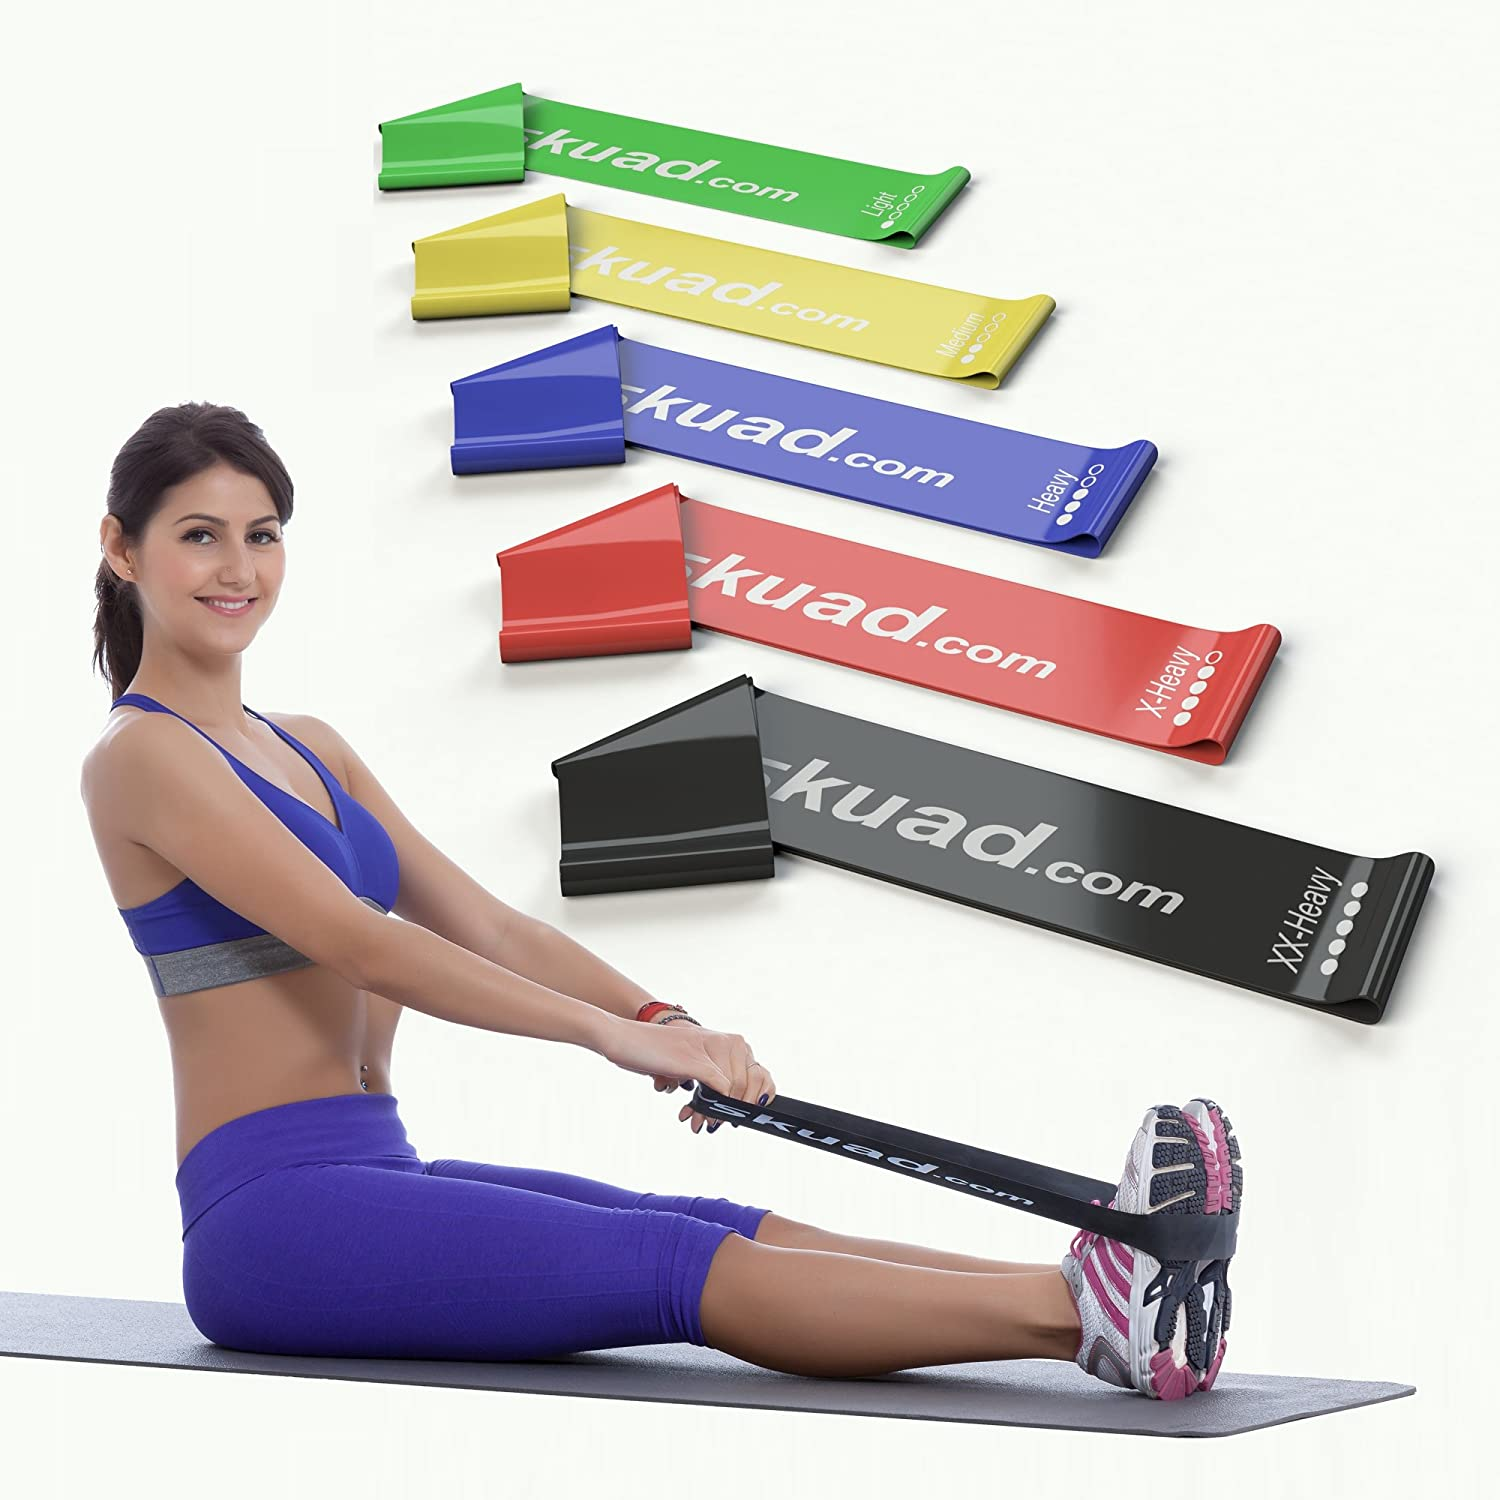 Fitness equipment deals for cyber monday